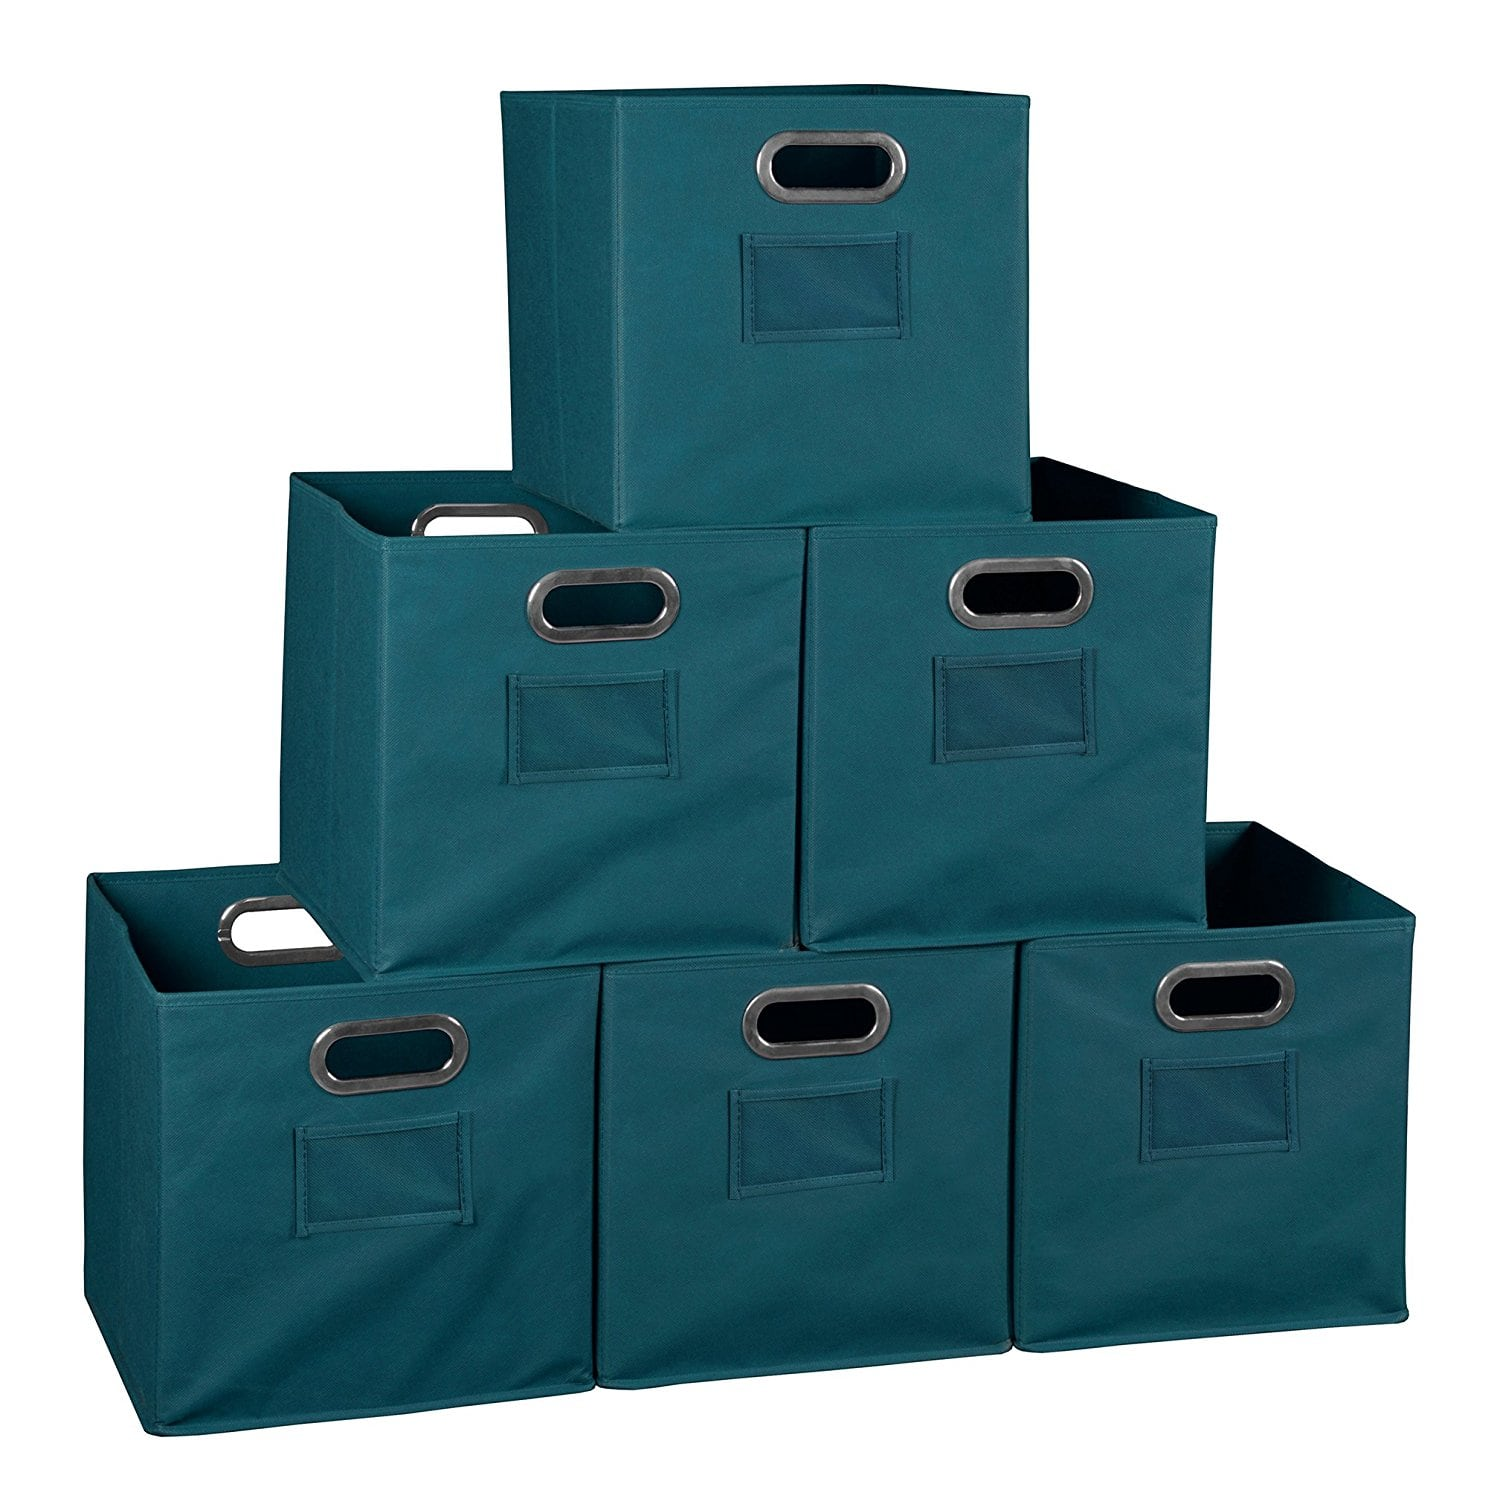 """Niche Cubo 12"""" Foldable Fabric Storage Bins 6 pc (Teal) for 13.96 $13.96"""